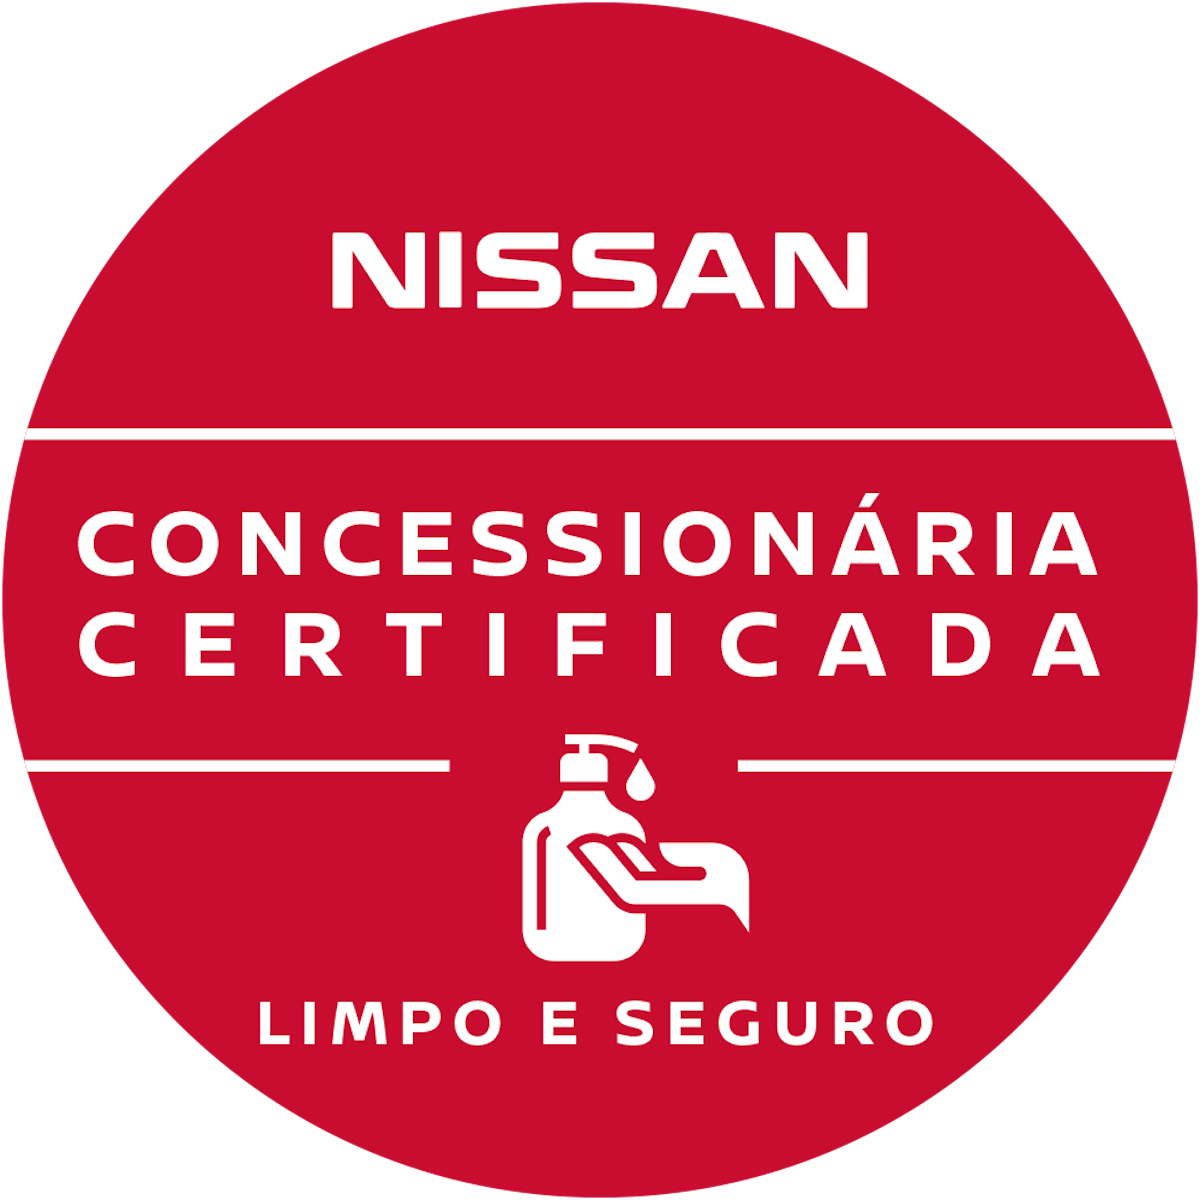 A Nissan Acredita